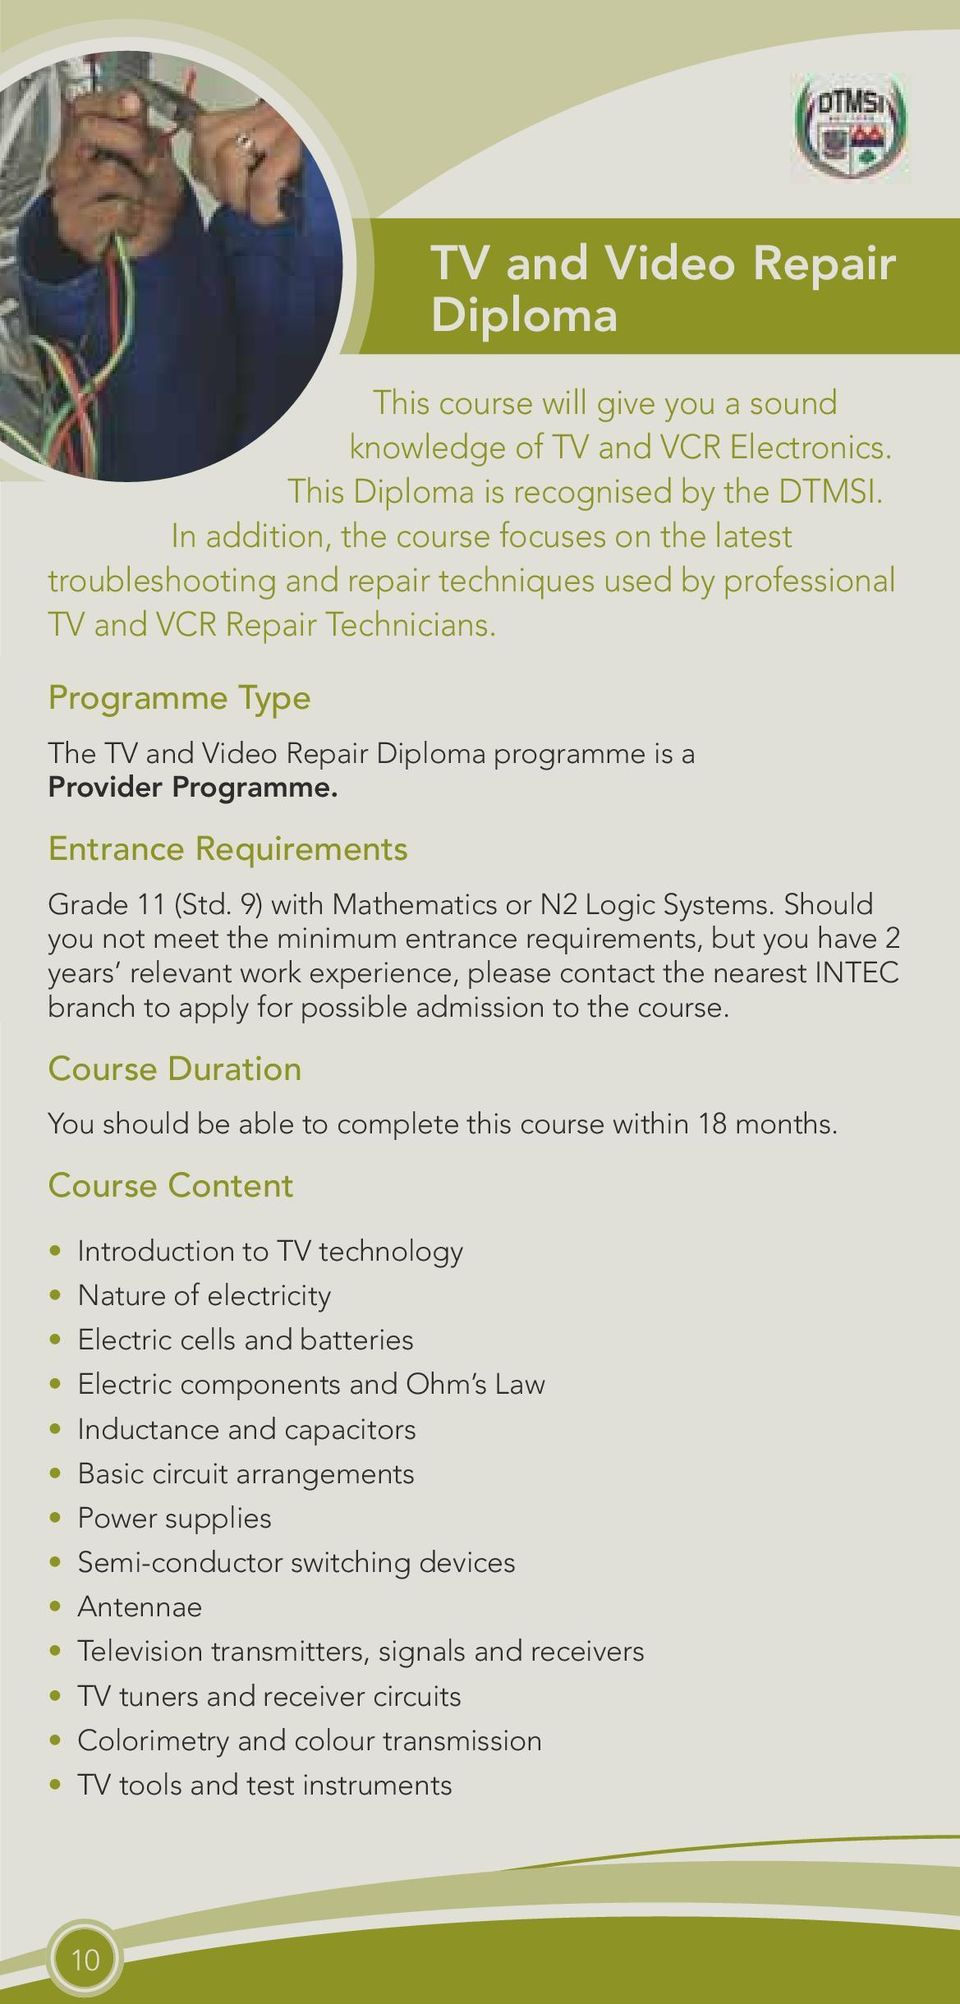 Programme Type The TV and Video Repair Diploma programme is a Provider Programme. Entrance Requirements Grade 11 (Std. 9) with Mathematics or N2 Logic Systems.